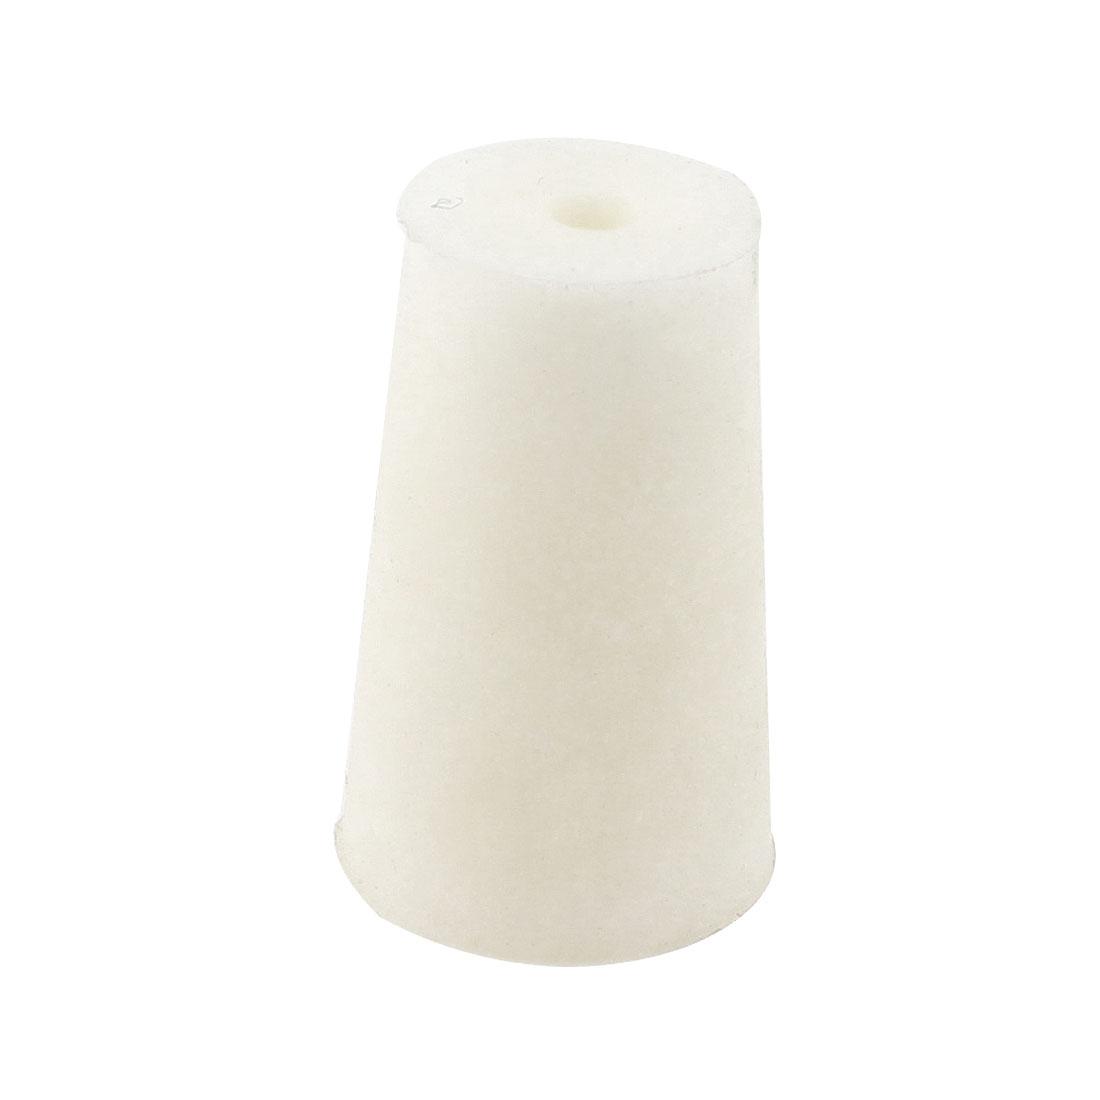 18mm Bottom Diameter 31mm Length Silicone Test Tube Stopper White